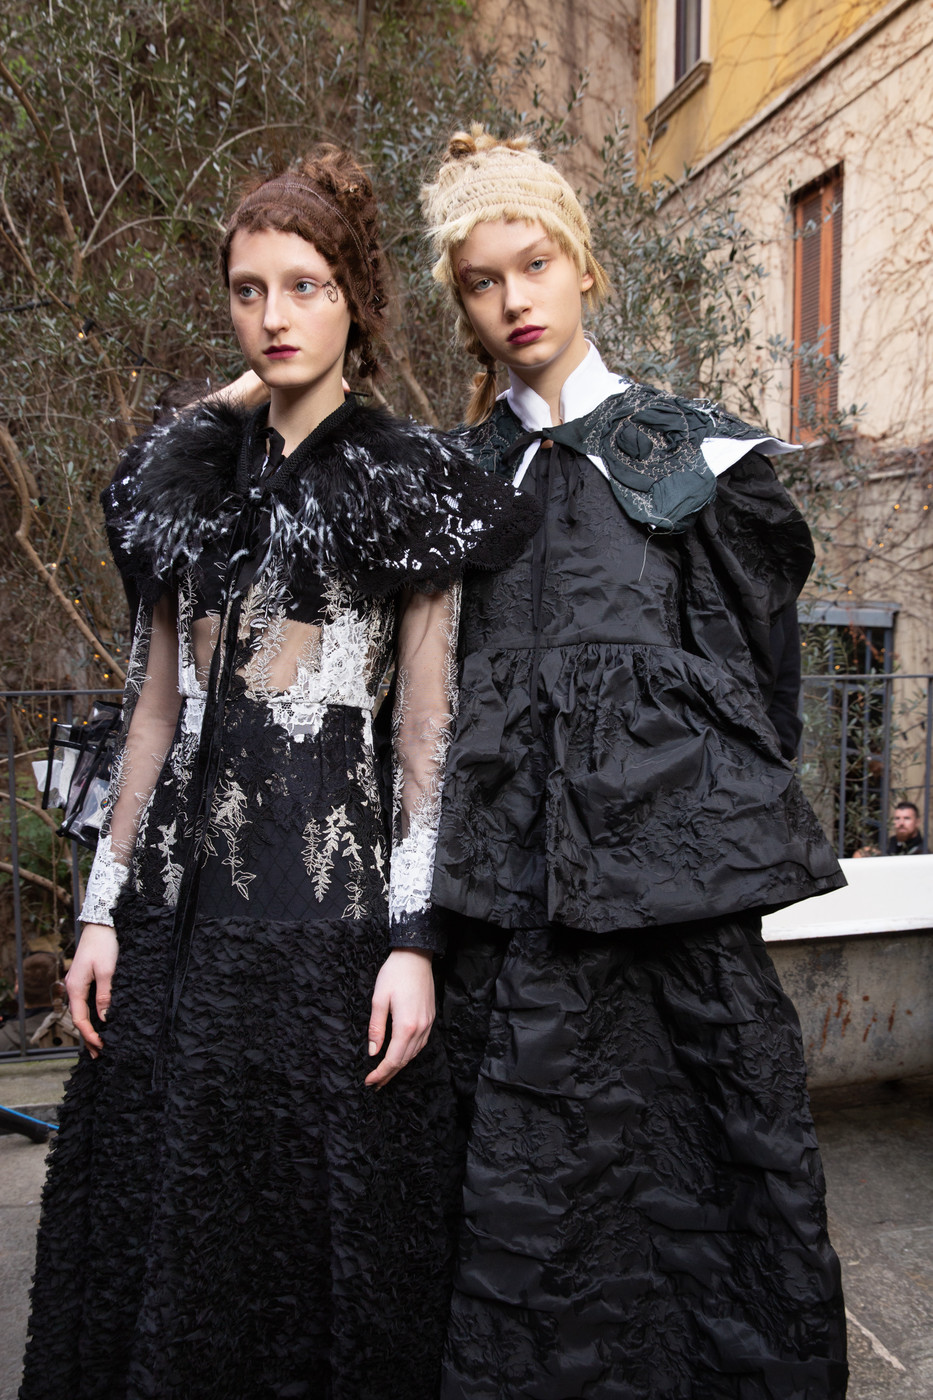 Antonio Marras At Milan Fashion Week Fall 2020 In 2020 Fashion Milan Fashion Week Fashion Week